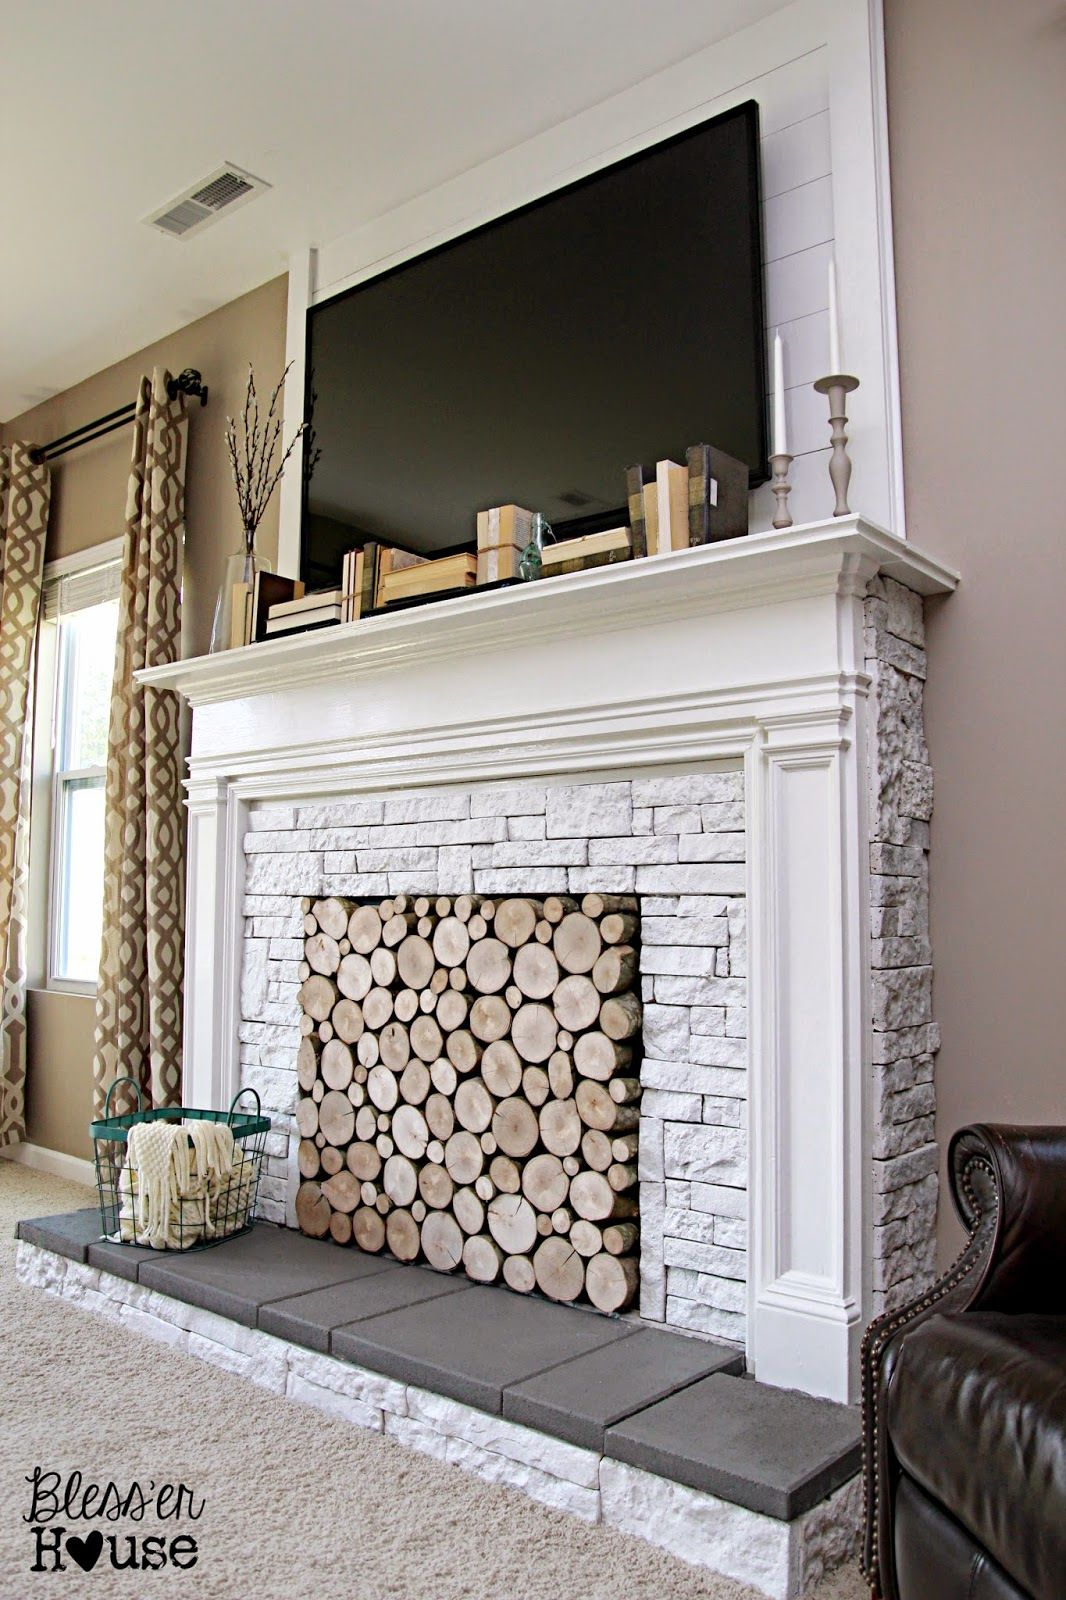 Diy faux fireplace holy moly this is so doable and we have the fireplace this would just cover up the ugliness